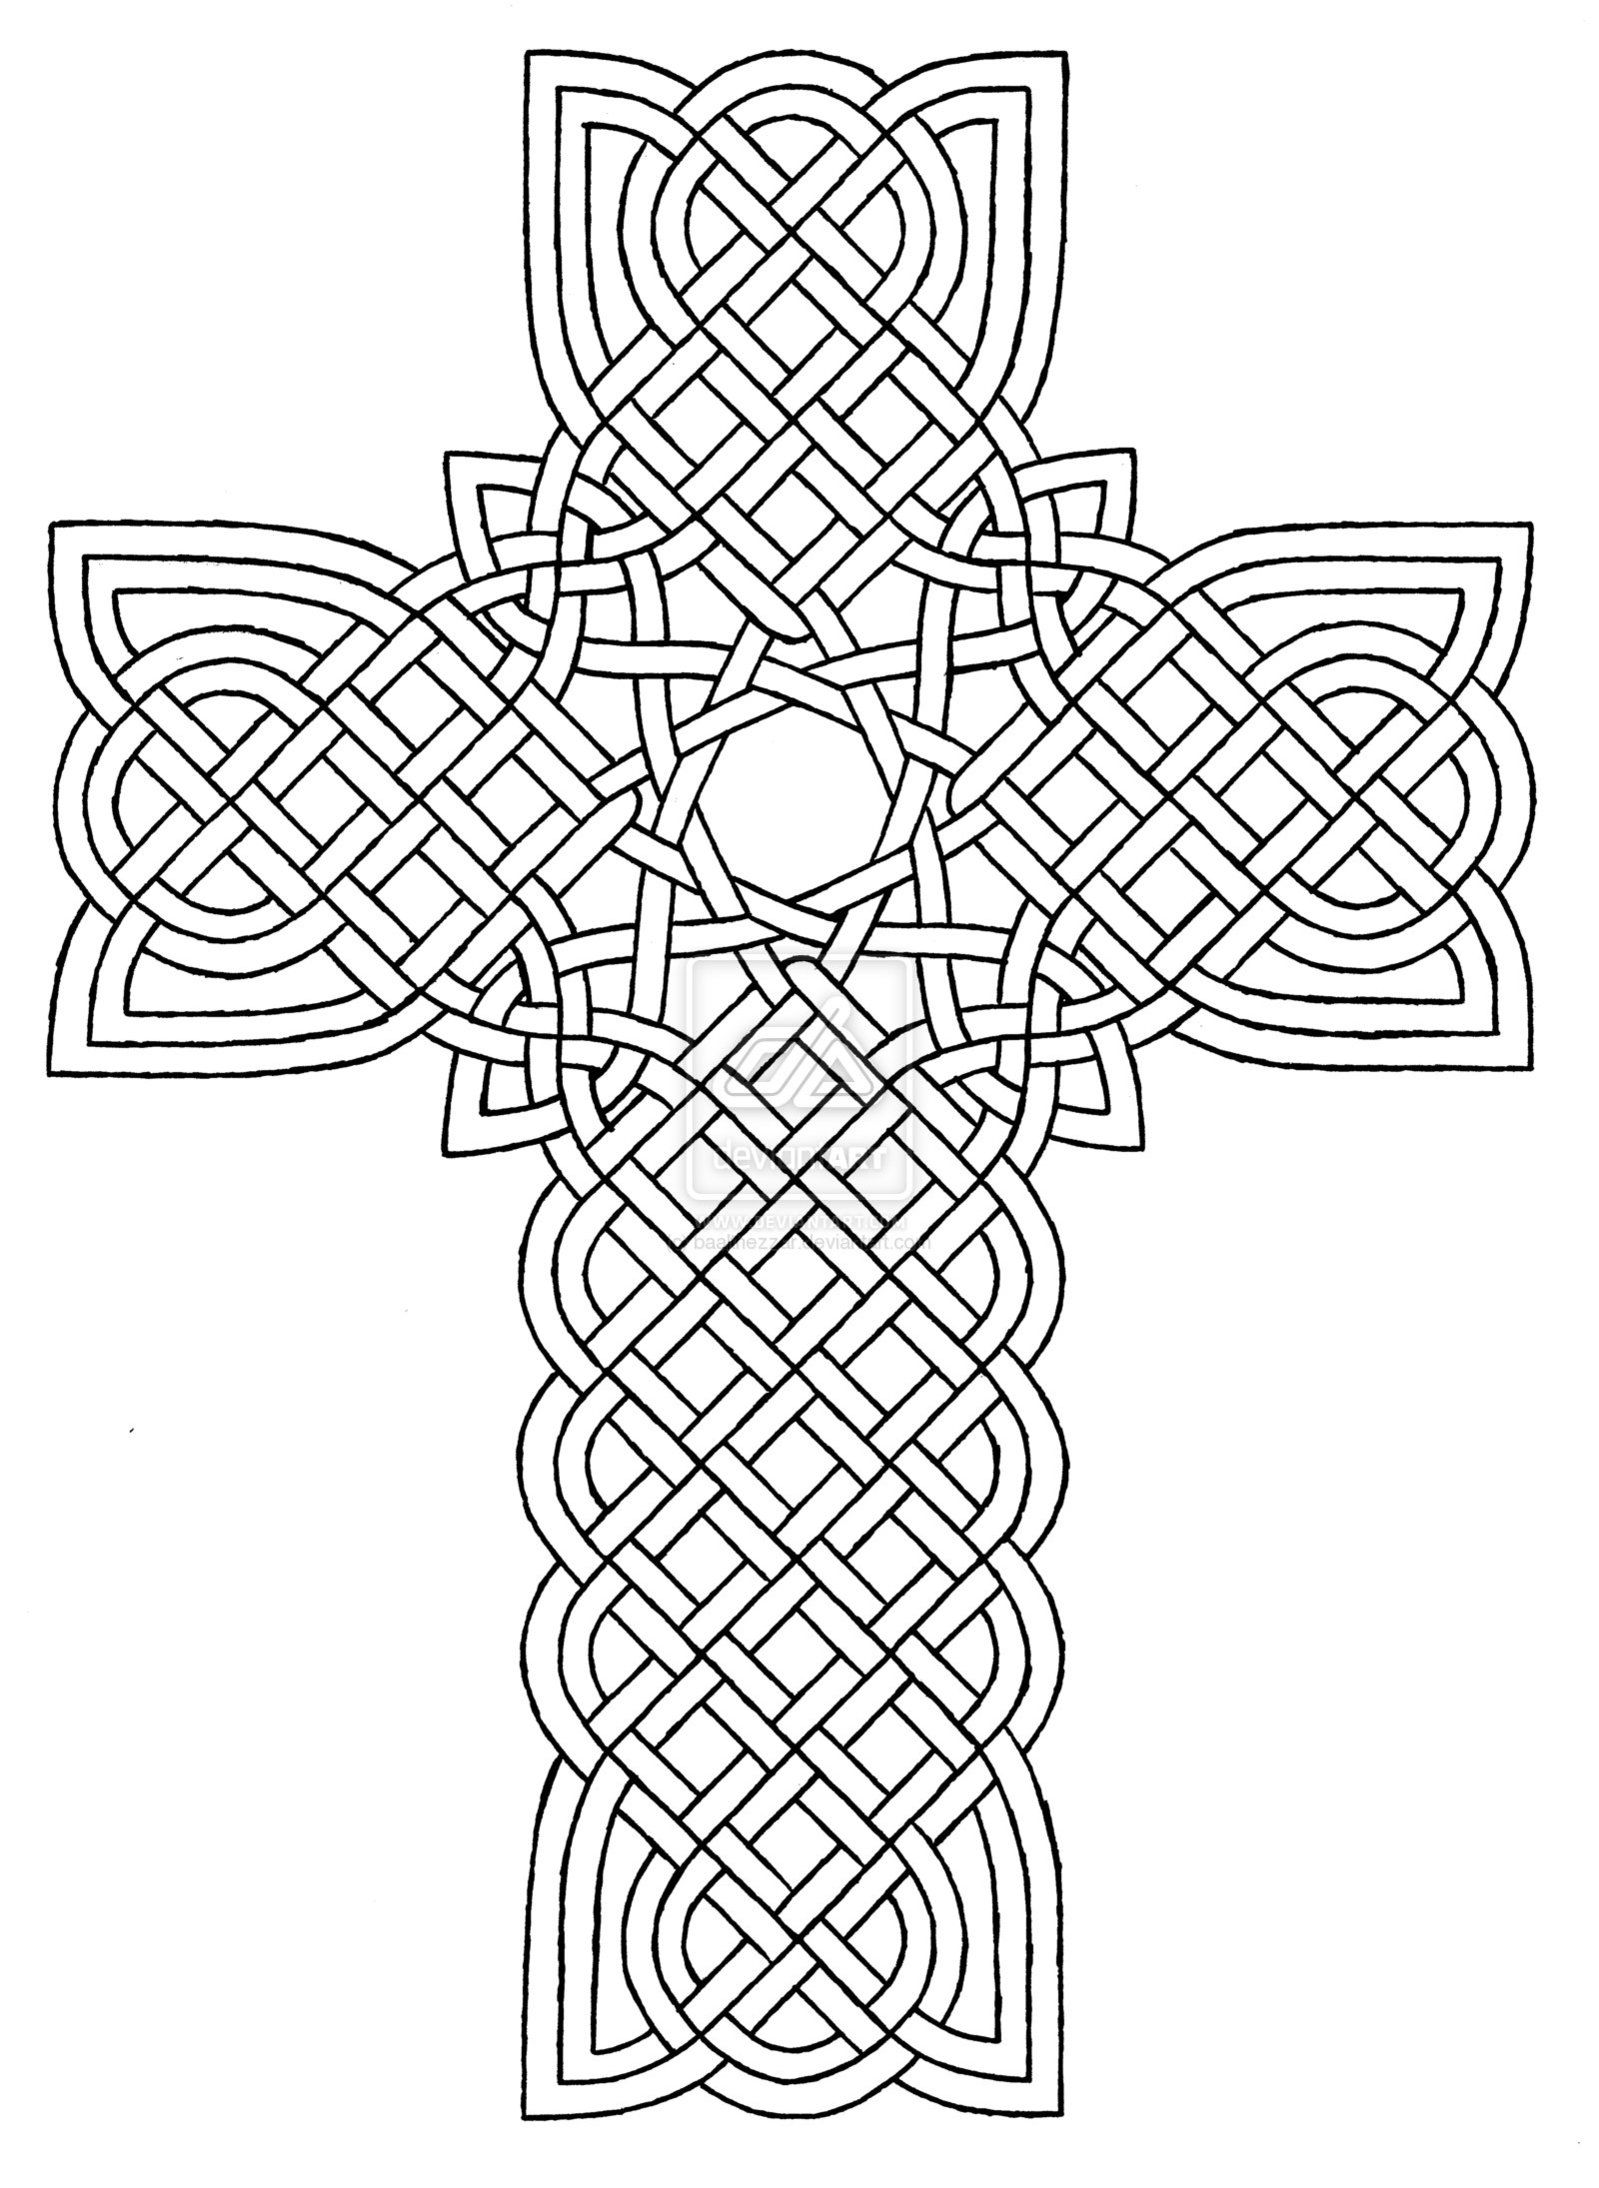 Detailed Coloring Pages Pdf : Pics of detailed cross coloring pages easter